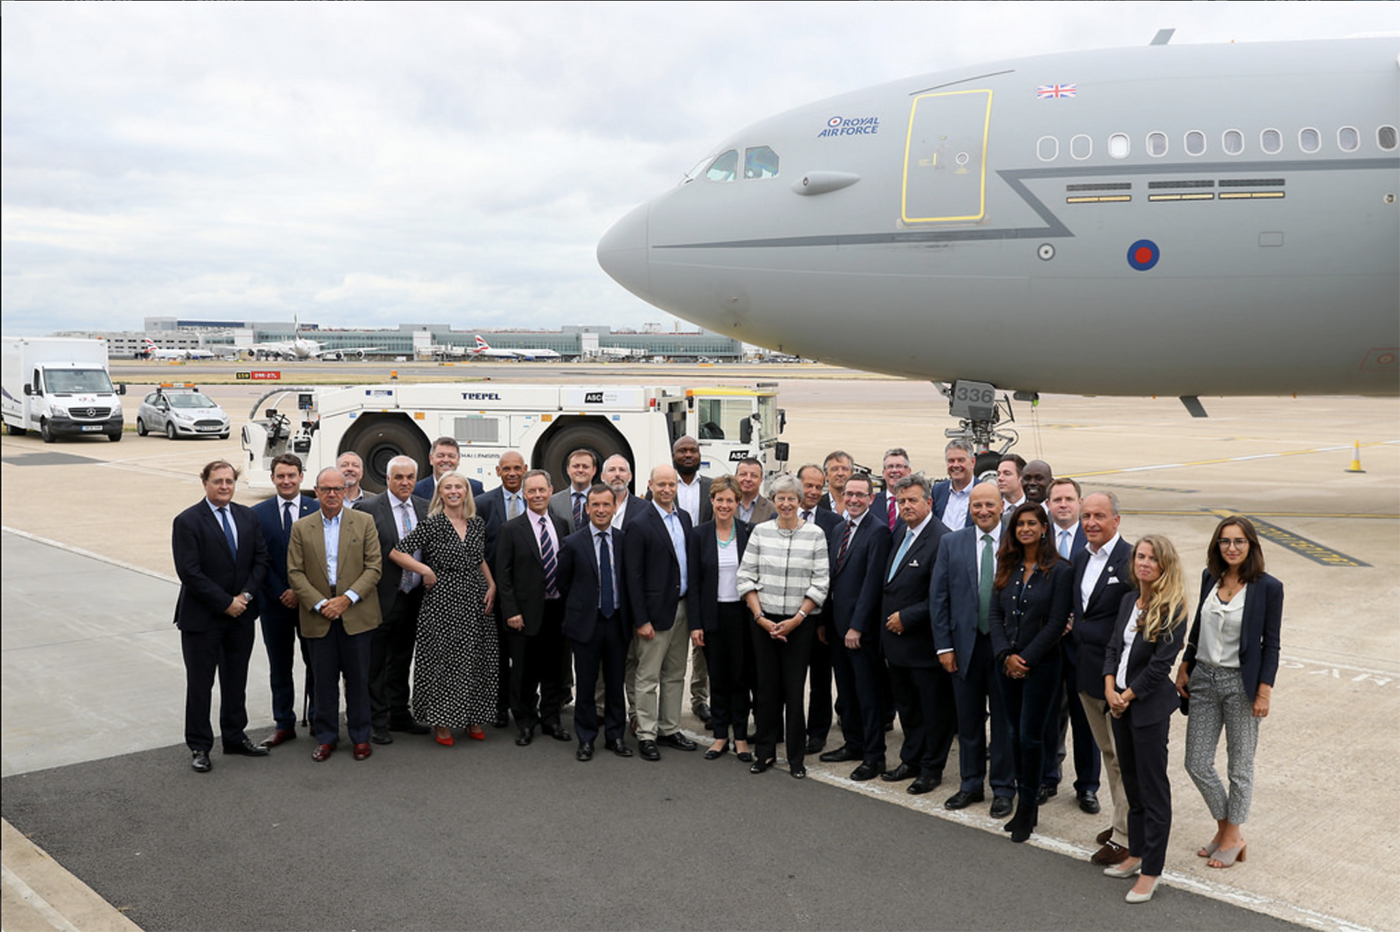 group of people stood next to a plane smiling